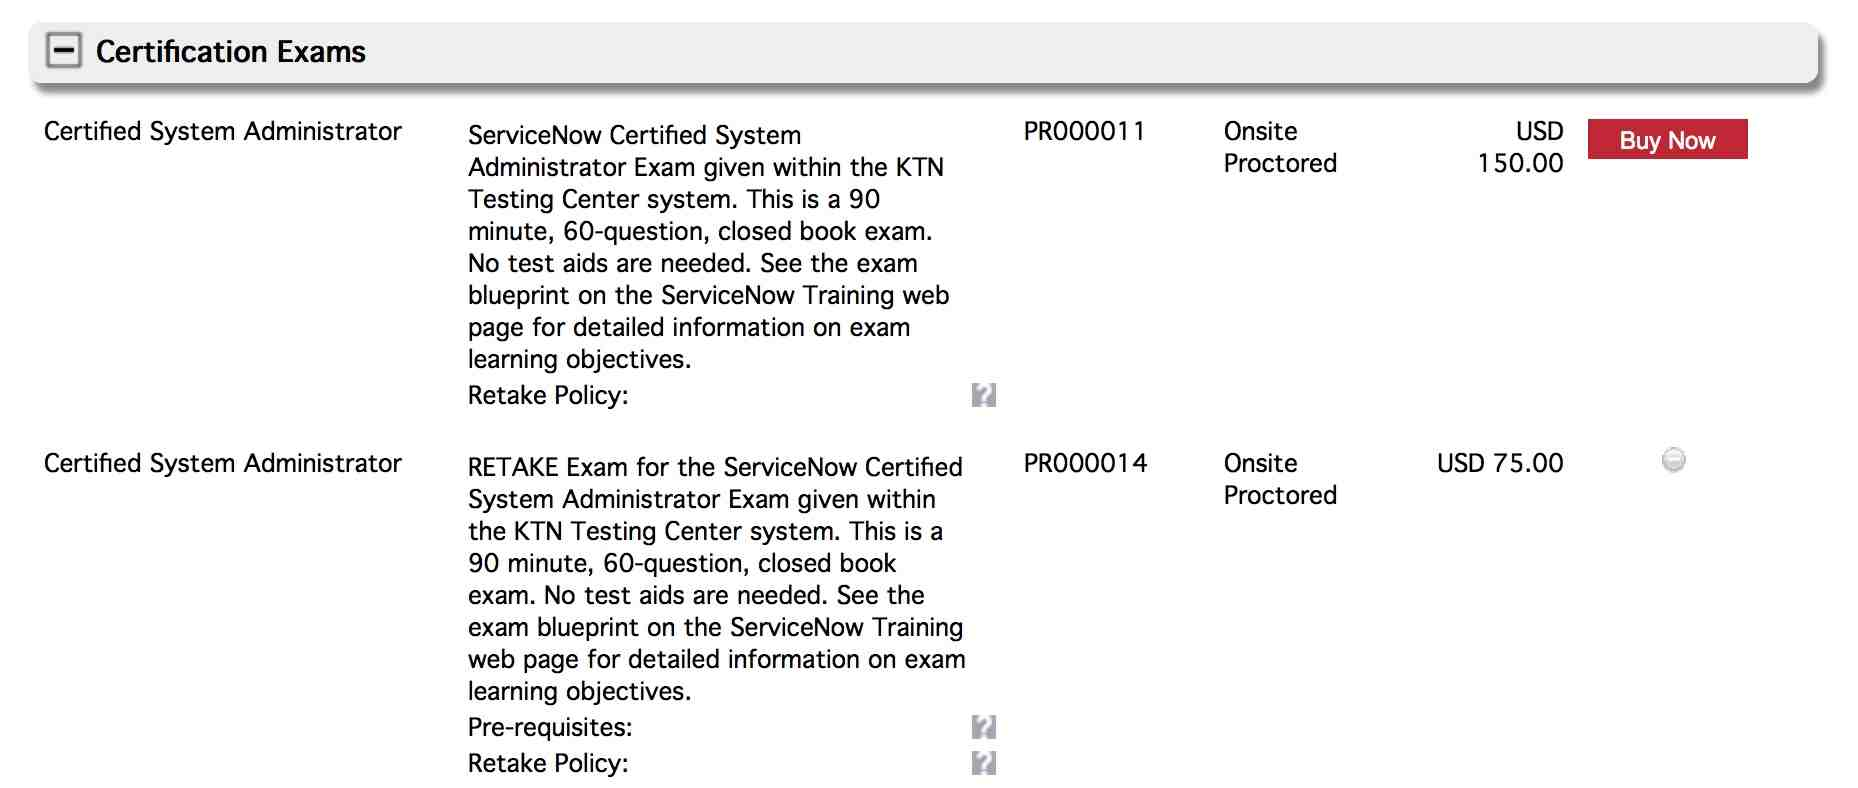 What Are The Exam Fees For Admin Certification Training And